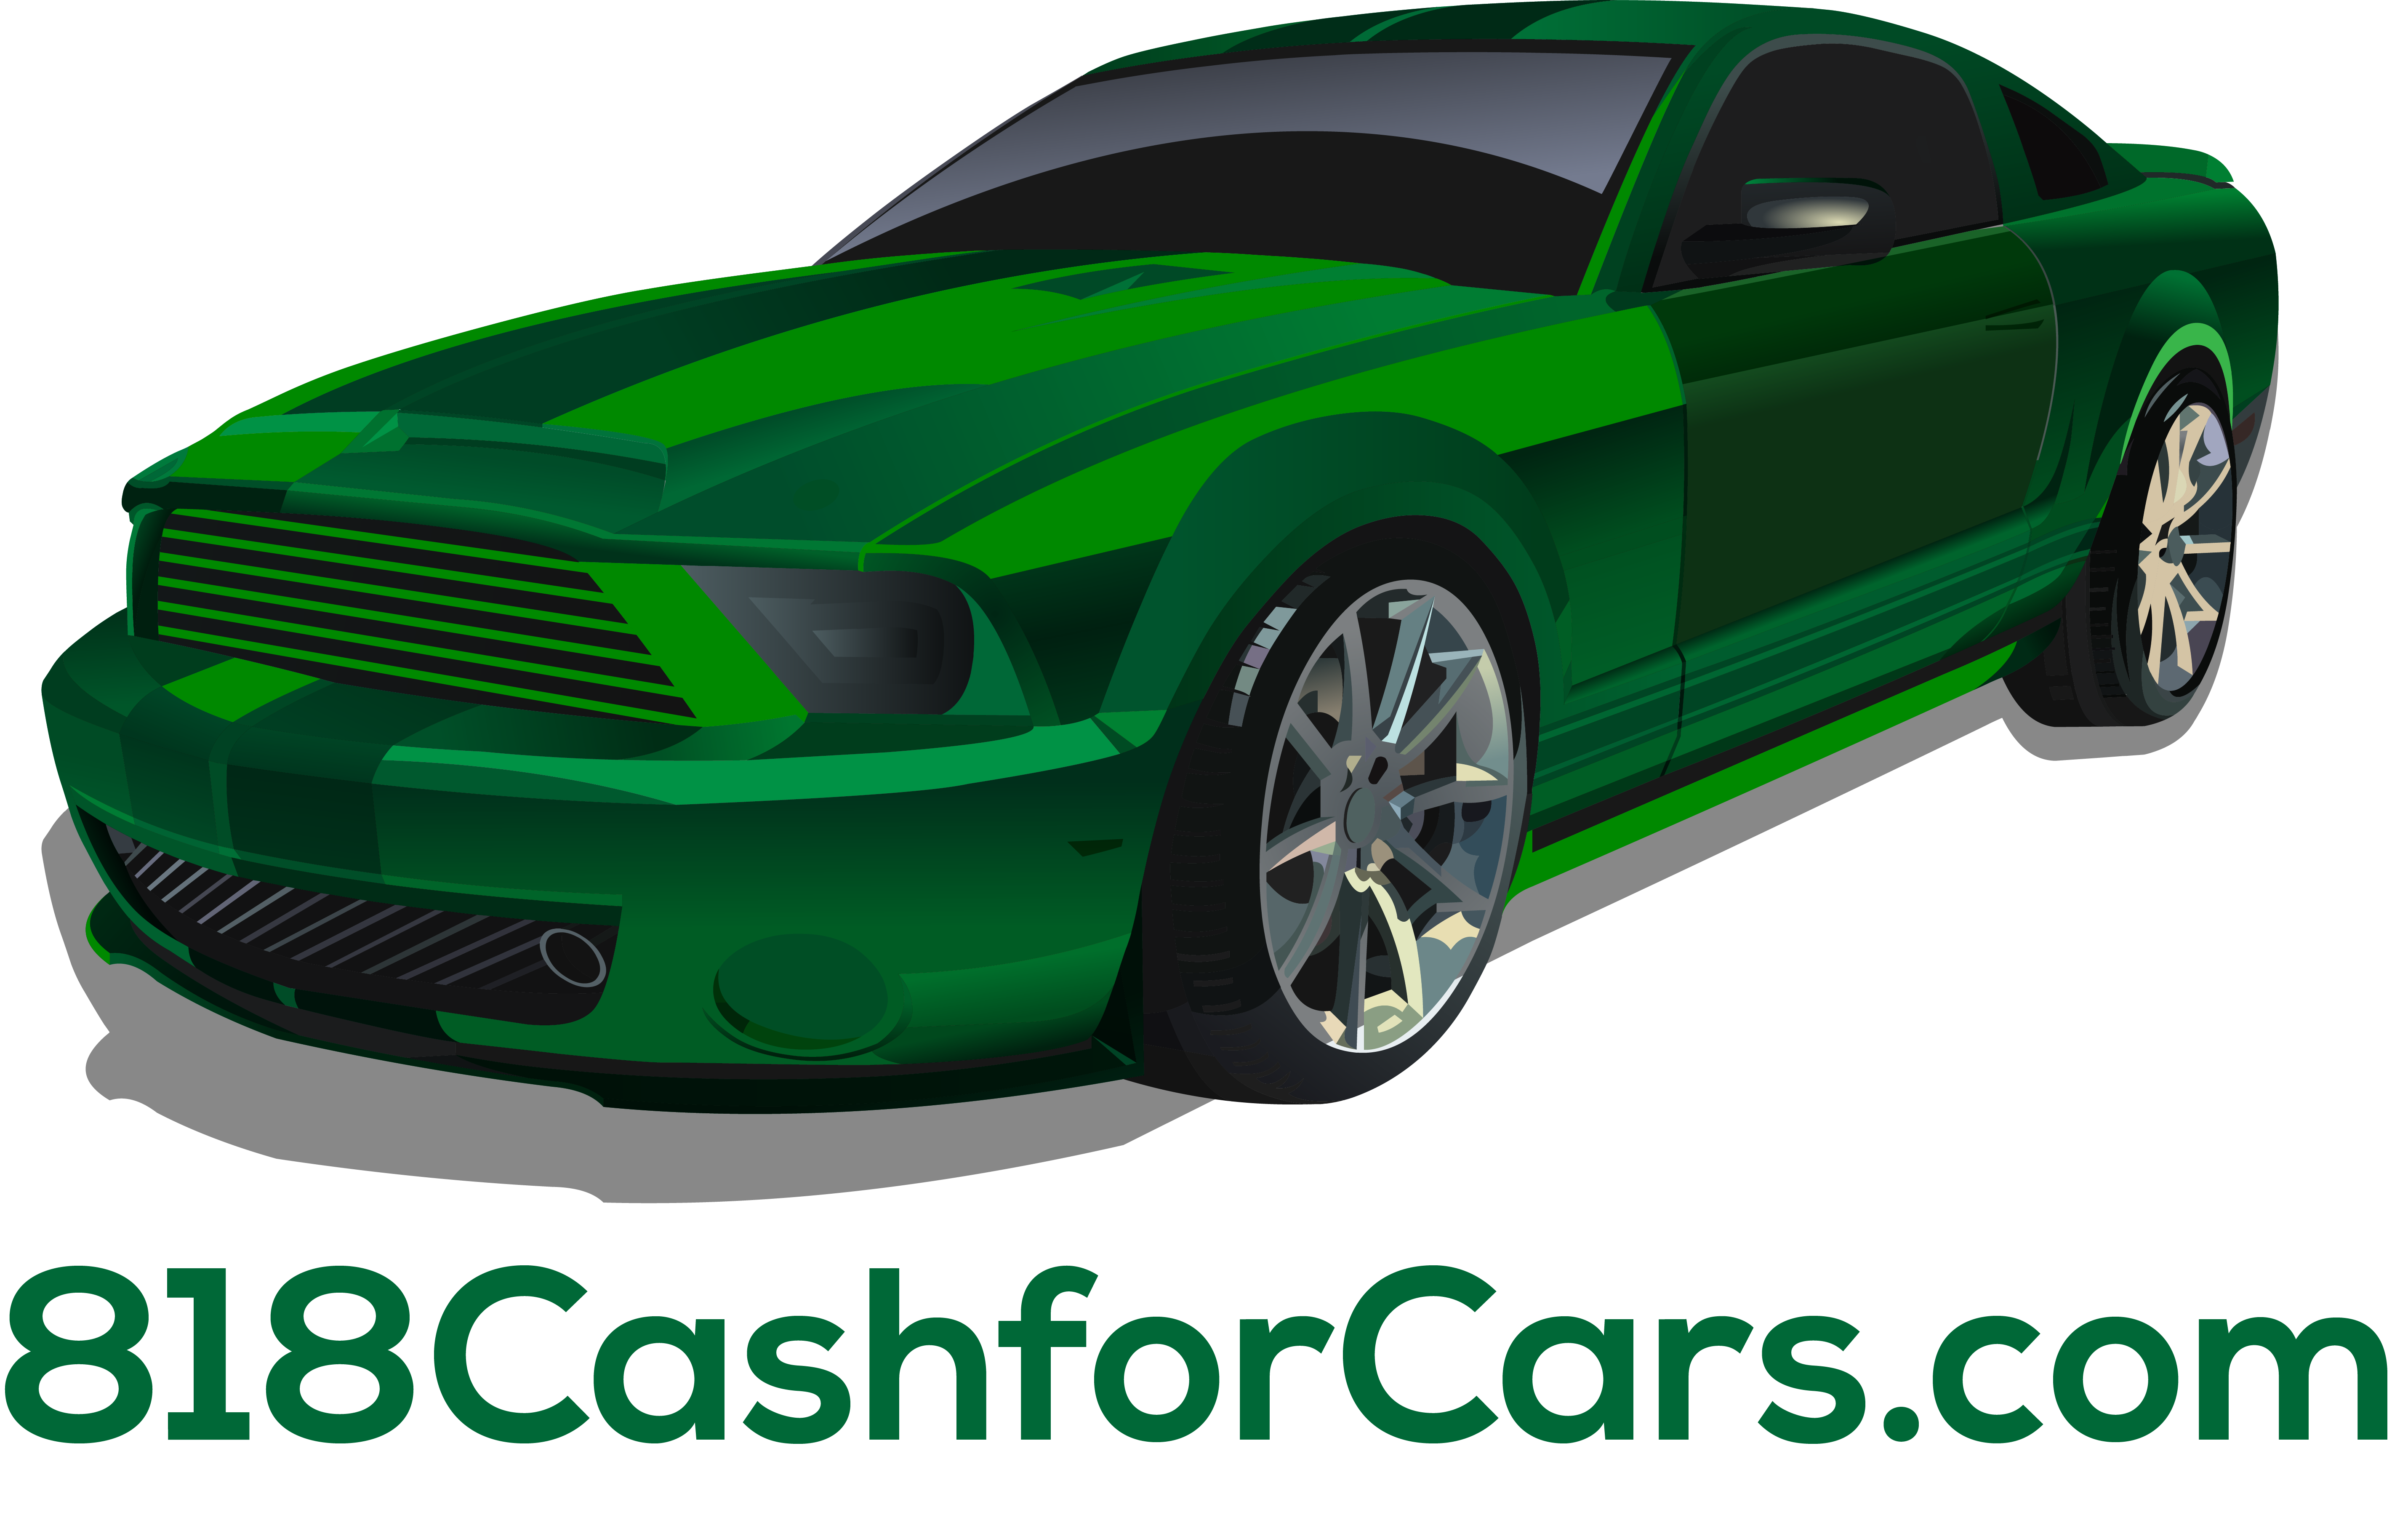 Where Do We Buy Cars? (818) 745-9445 818 Cash for Cars